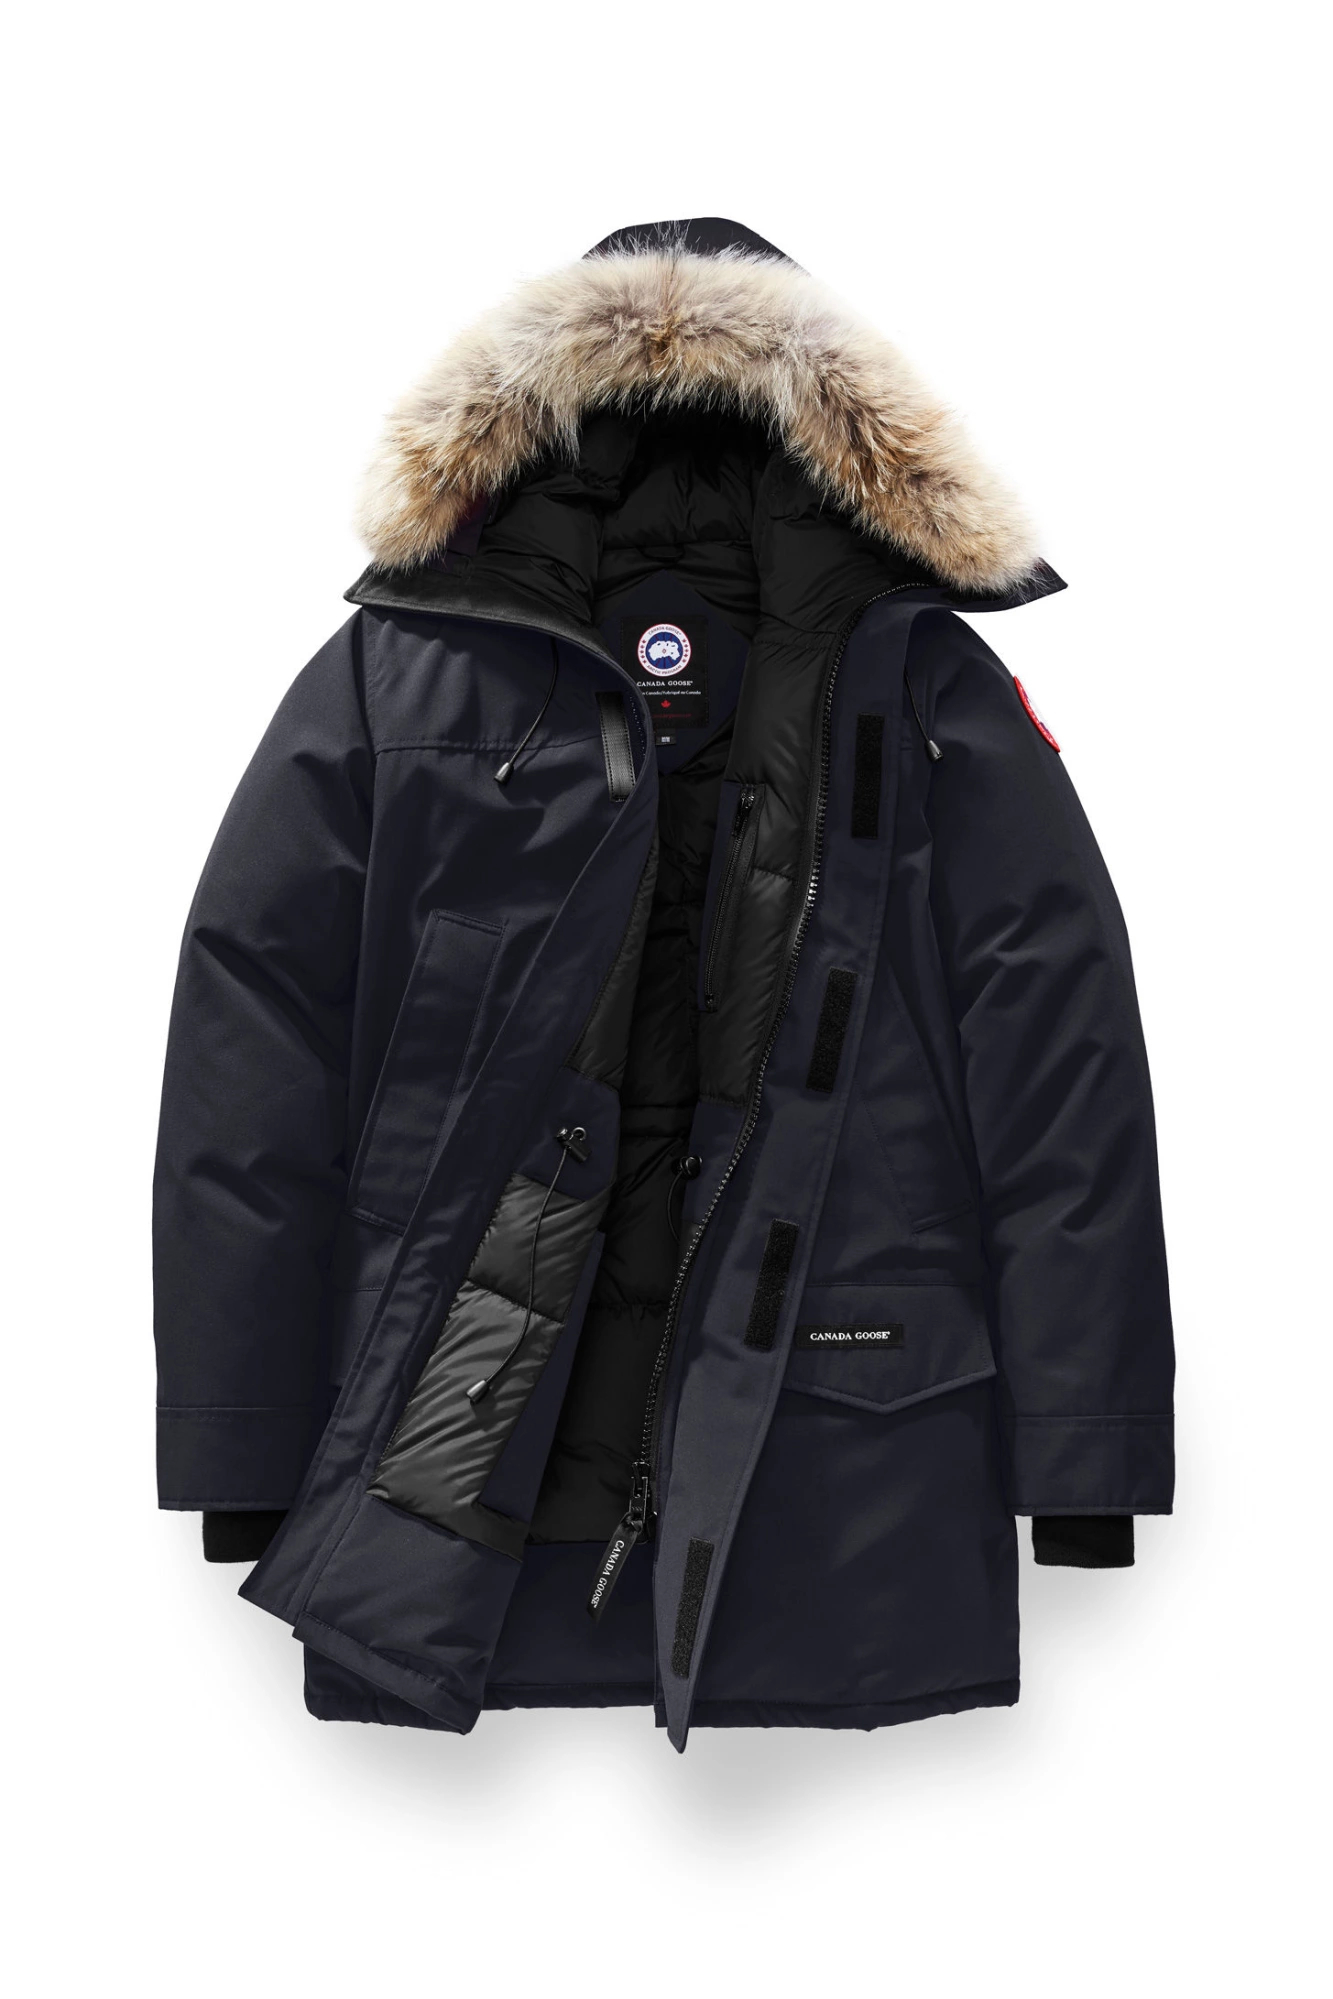 LANGFORD PARKA DARK BLUE 2062